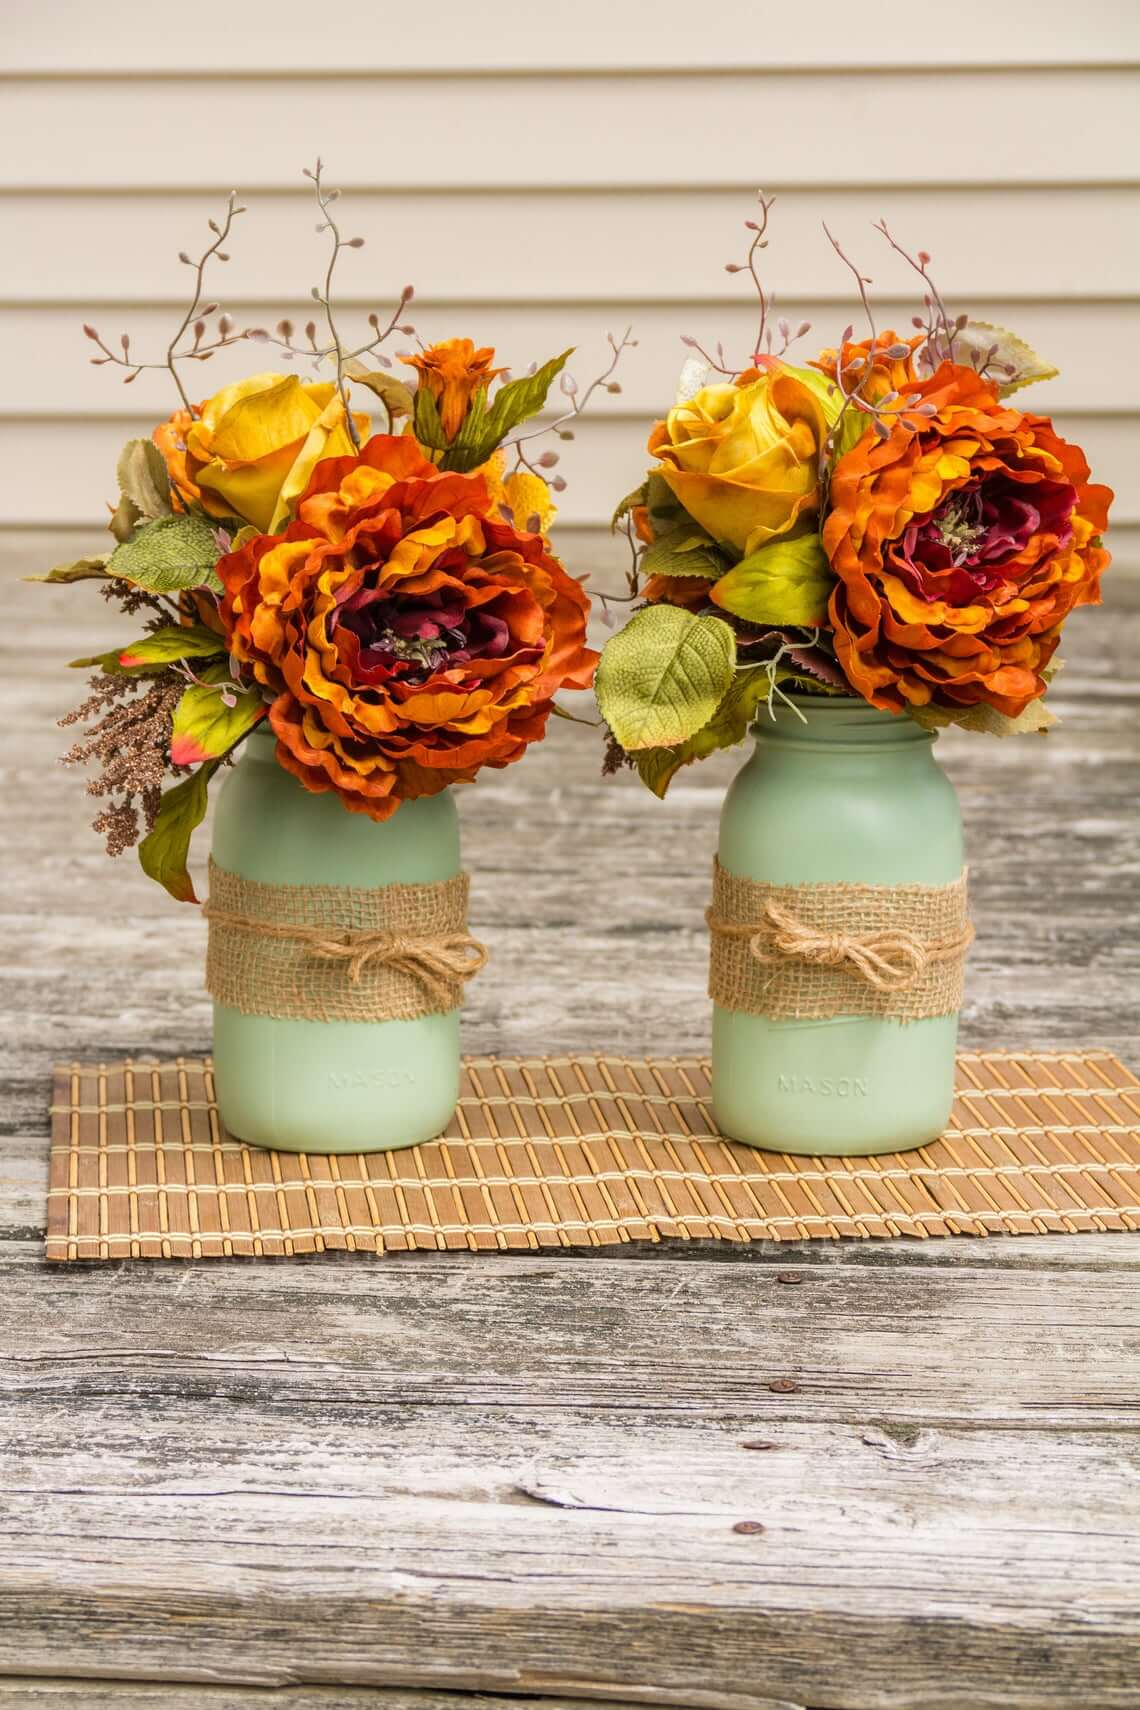 Endless Summer Bouquet in Painted Jar Vase